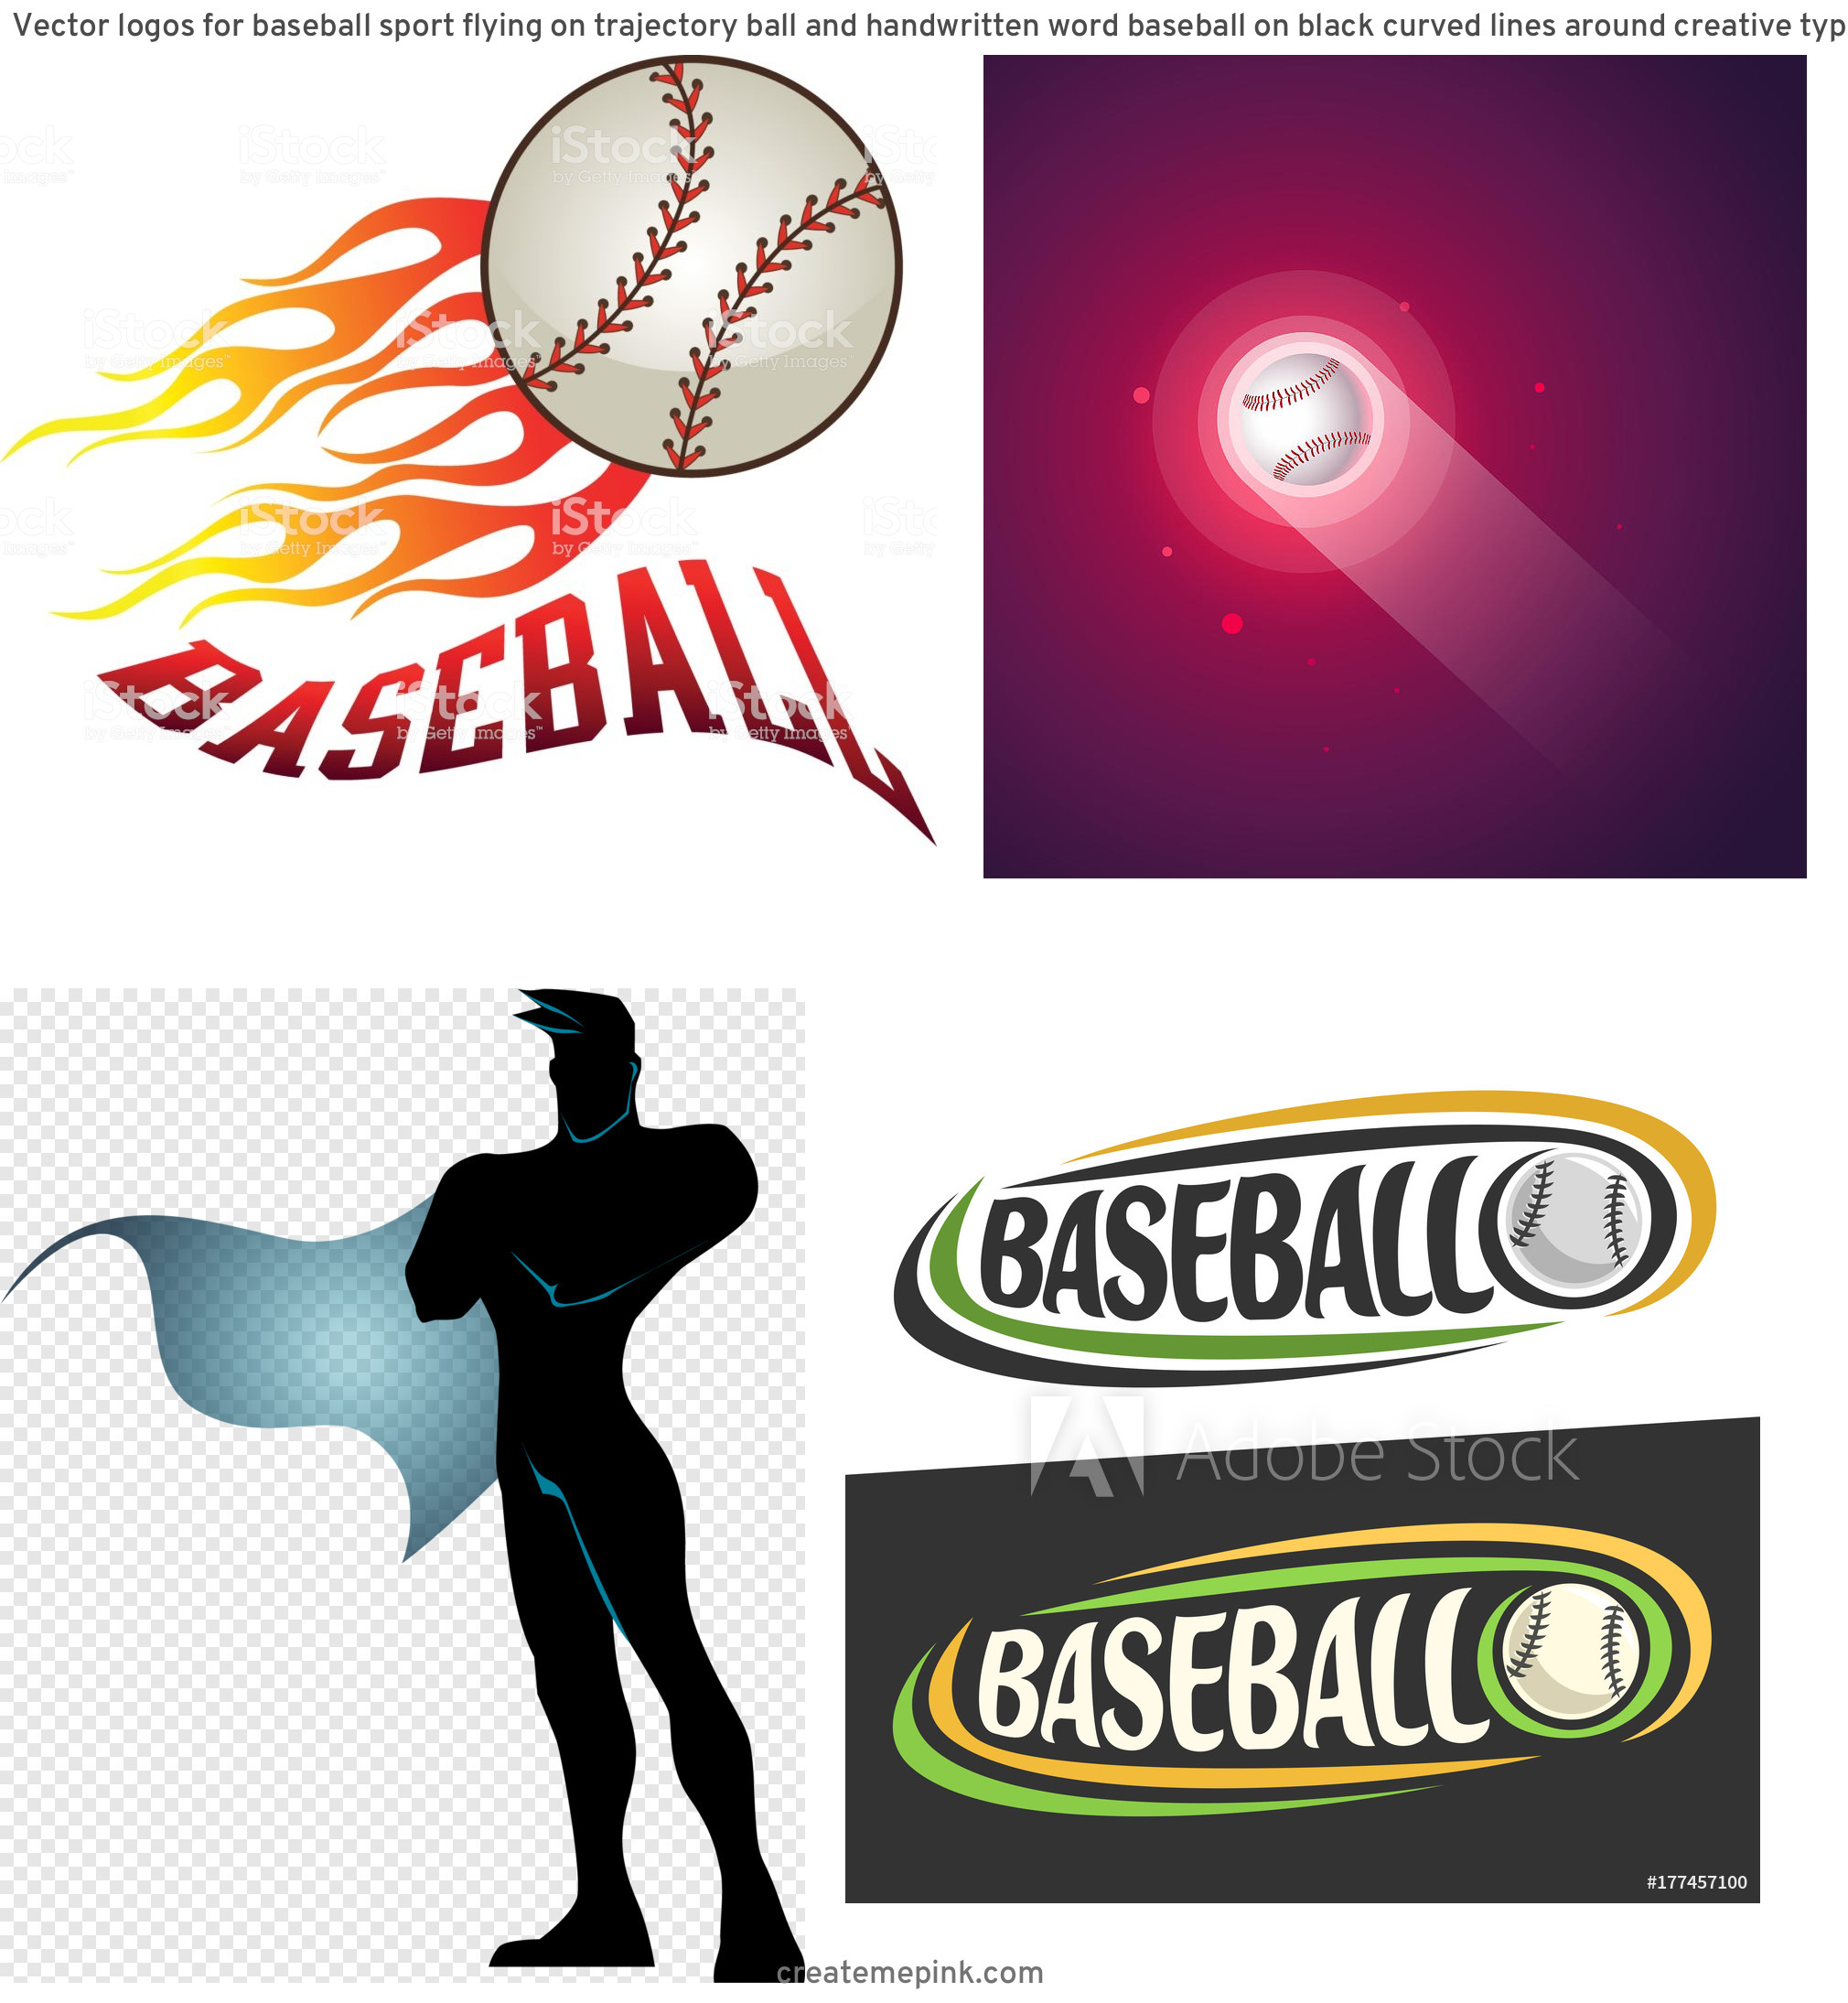 Flying Baseball Vector: Vector Logos For Baseball Sport Flying On Trajectory Ball And Handwritten Word Baseball On Black Curved Lines Around Creative Typography For Text Baseball On White Background Sports Decoration F